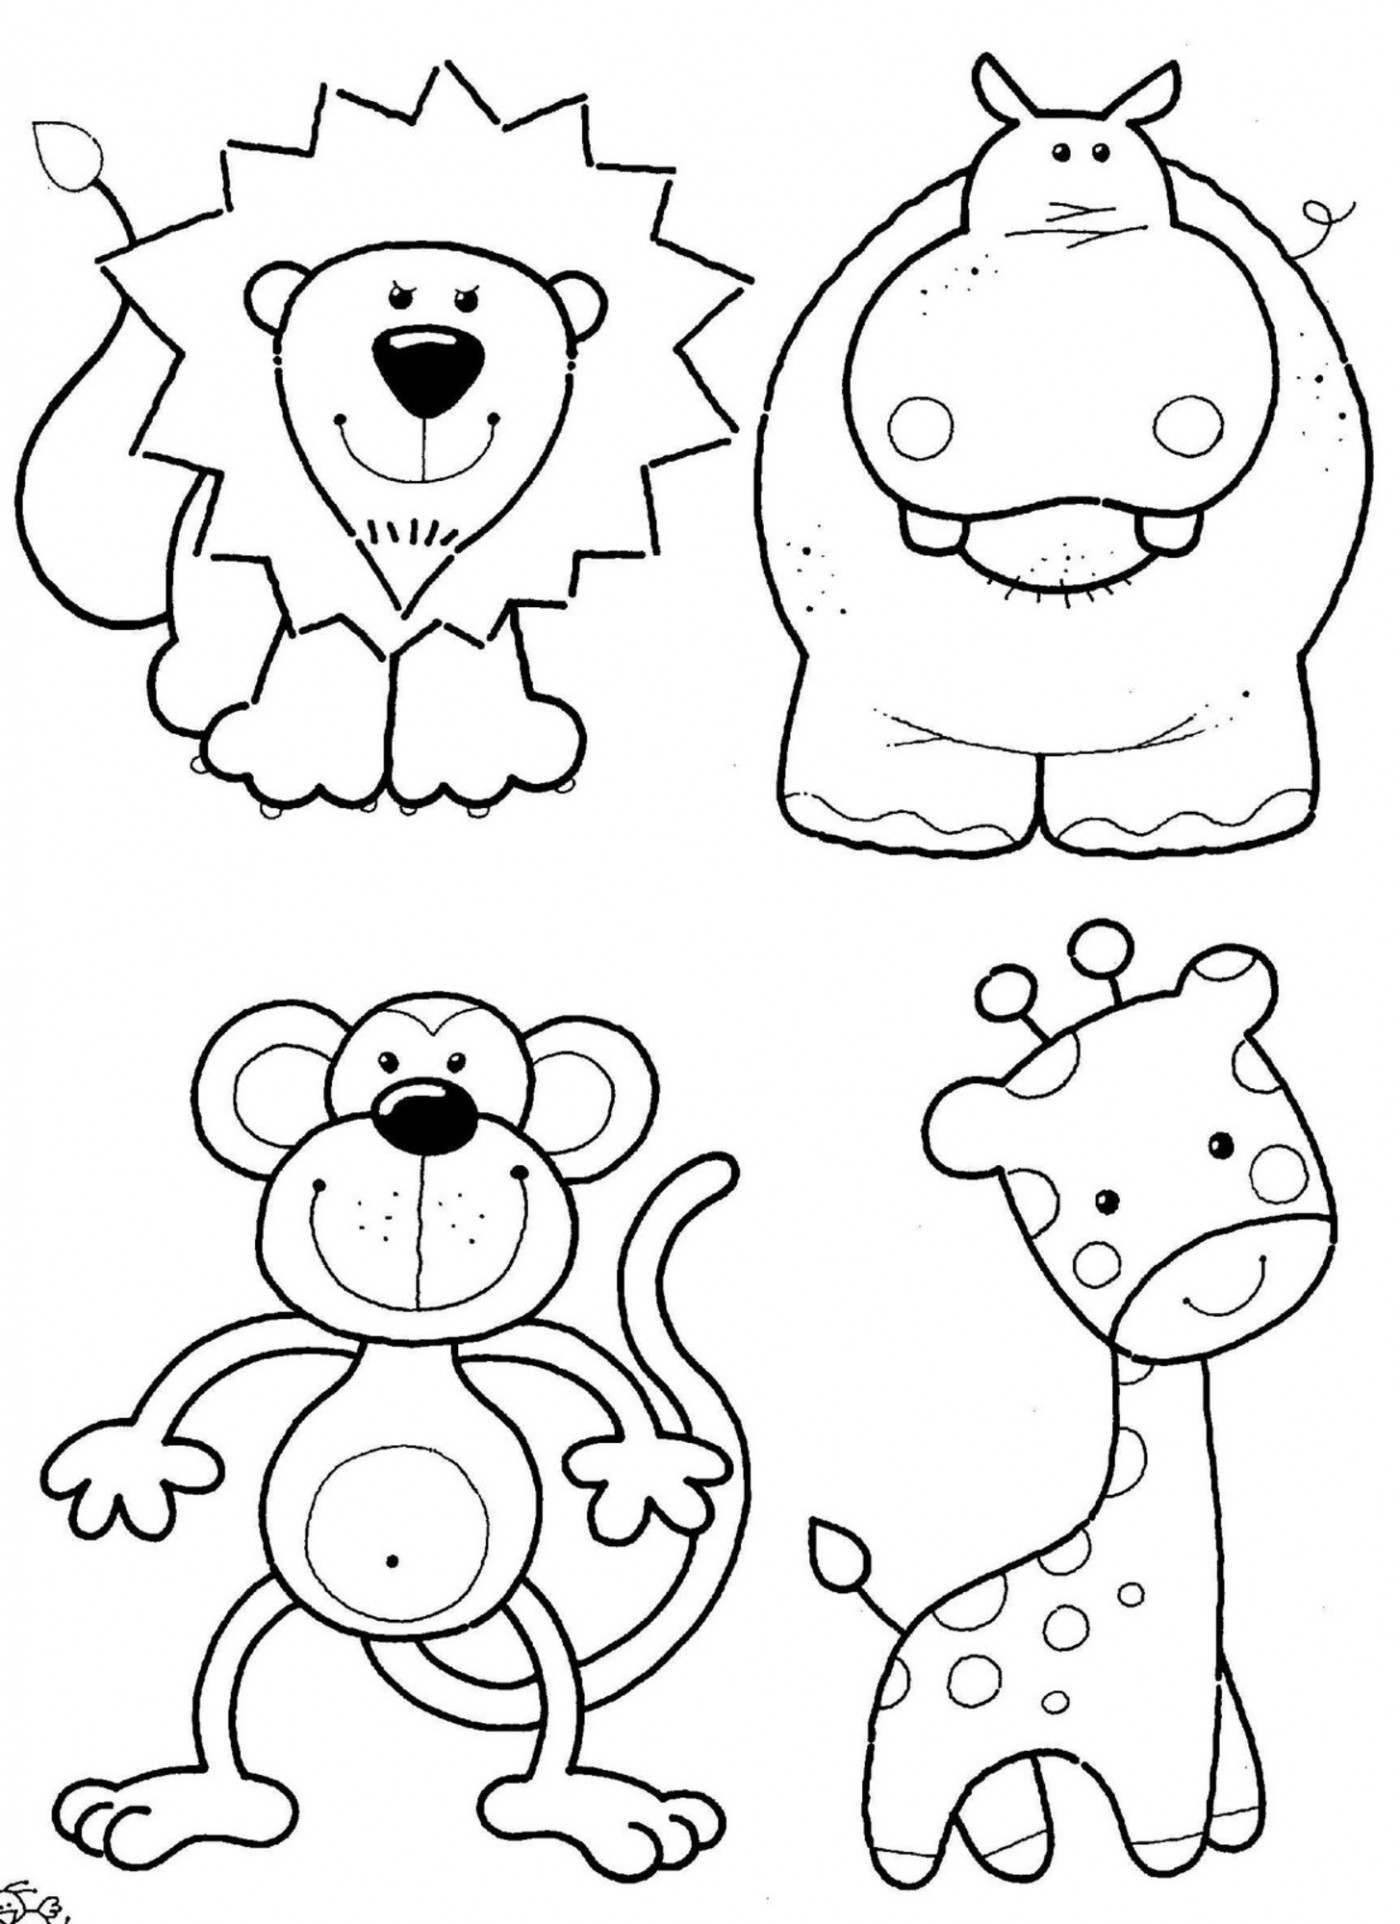 children coloring pages free animals - photo#10